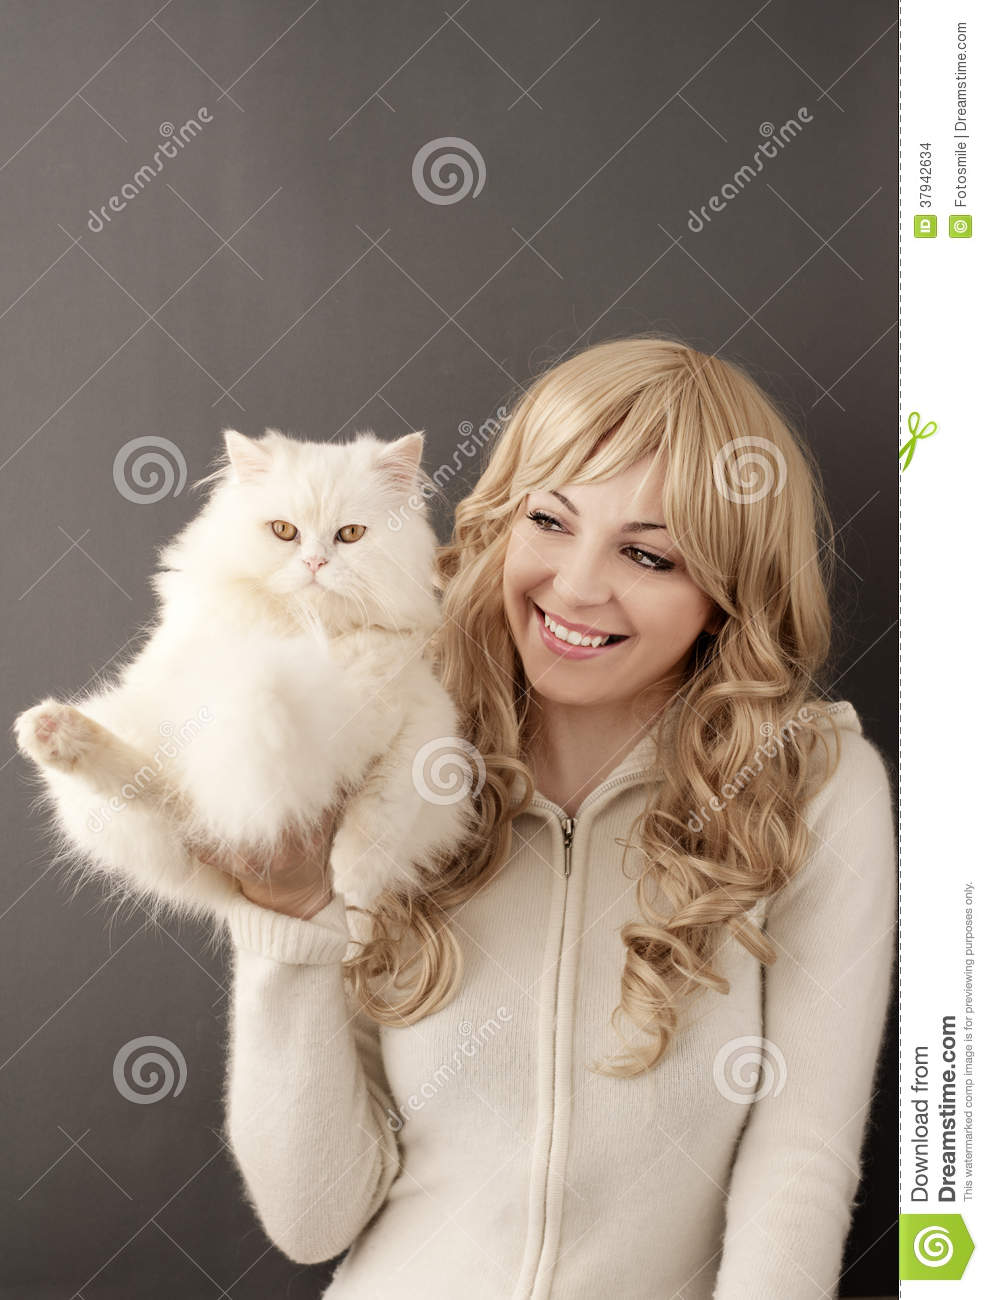 Girl And Cat Stock Photo Image Of Hilarious Perfect